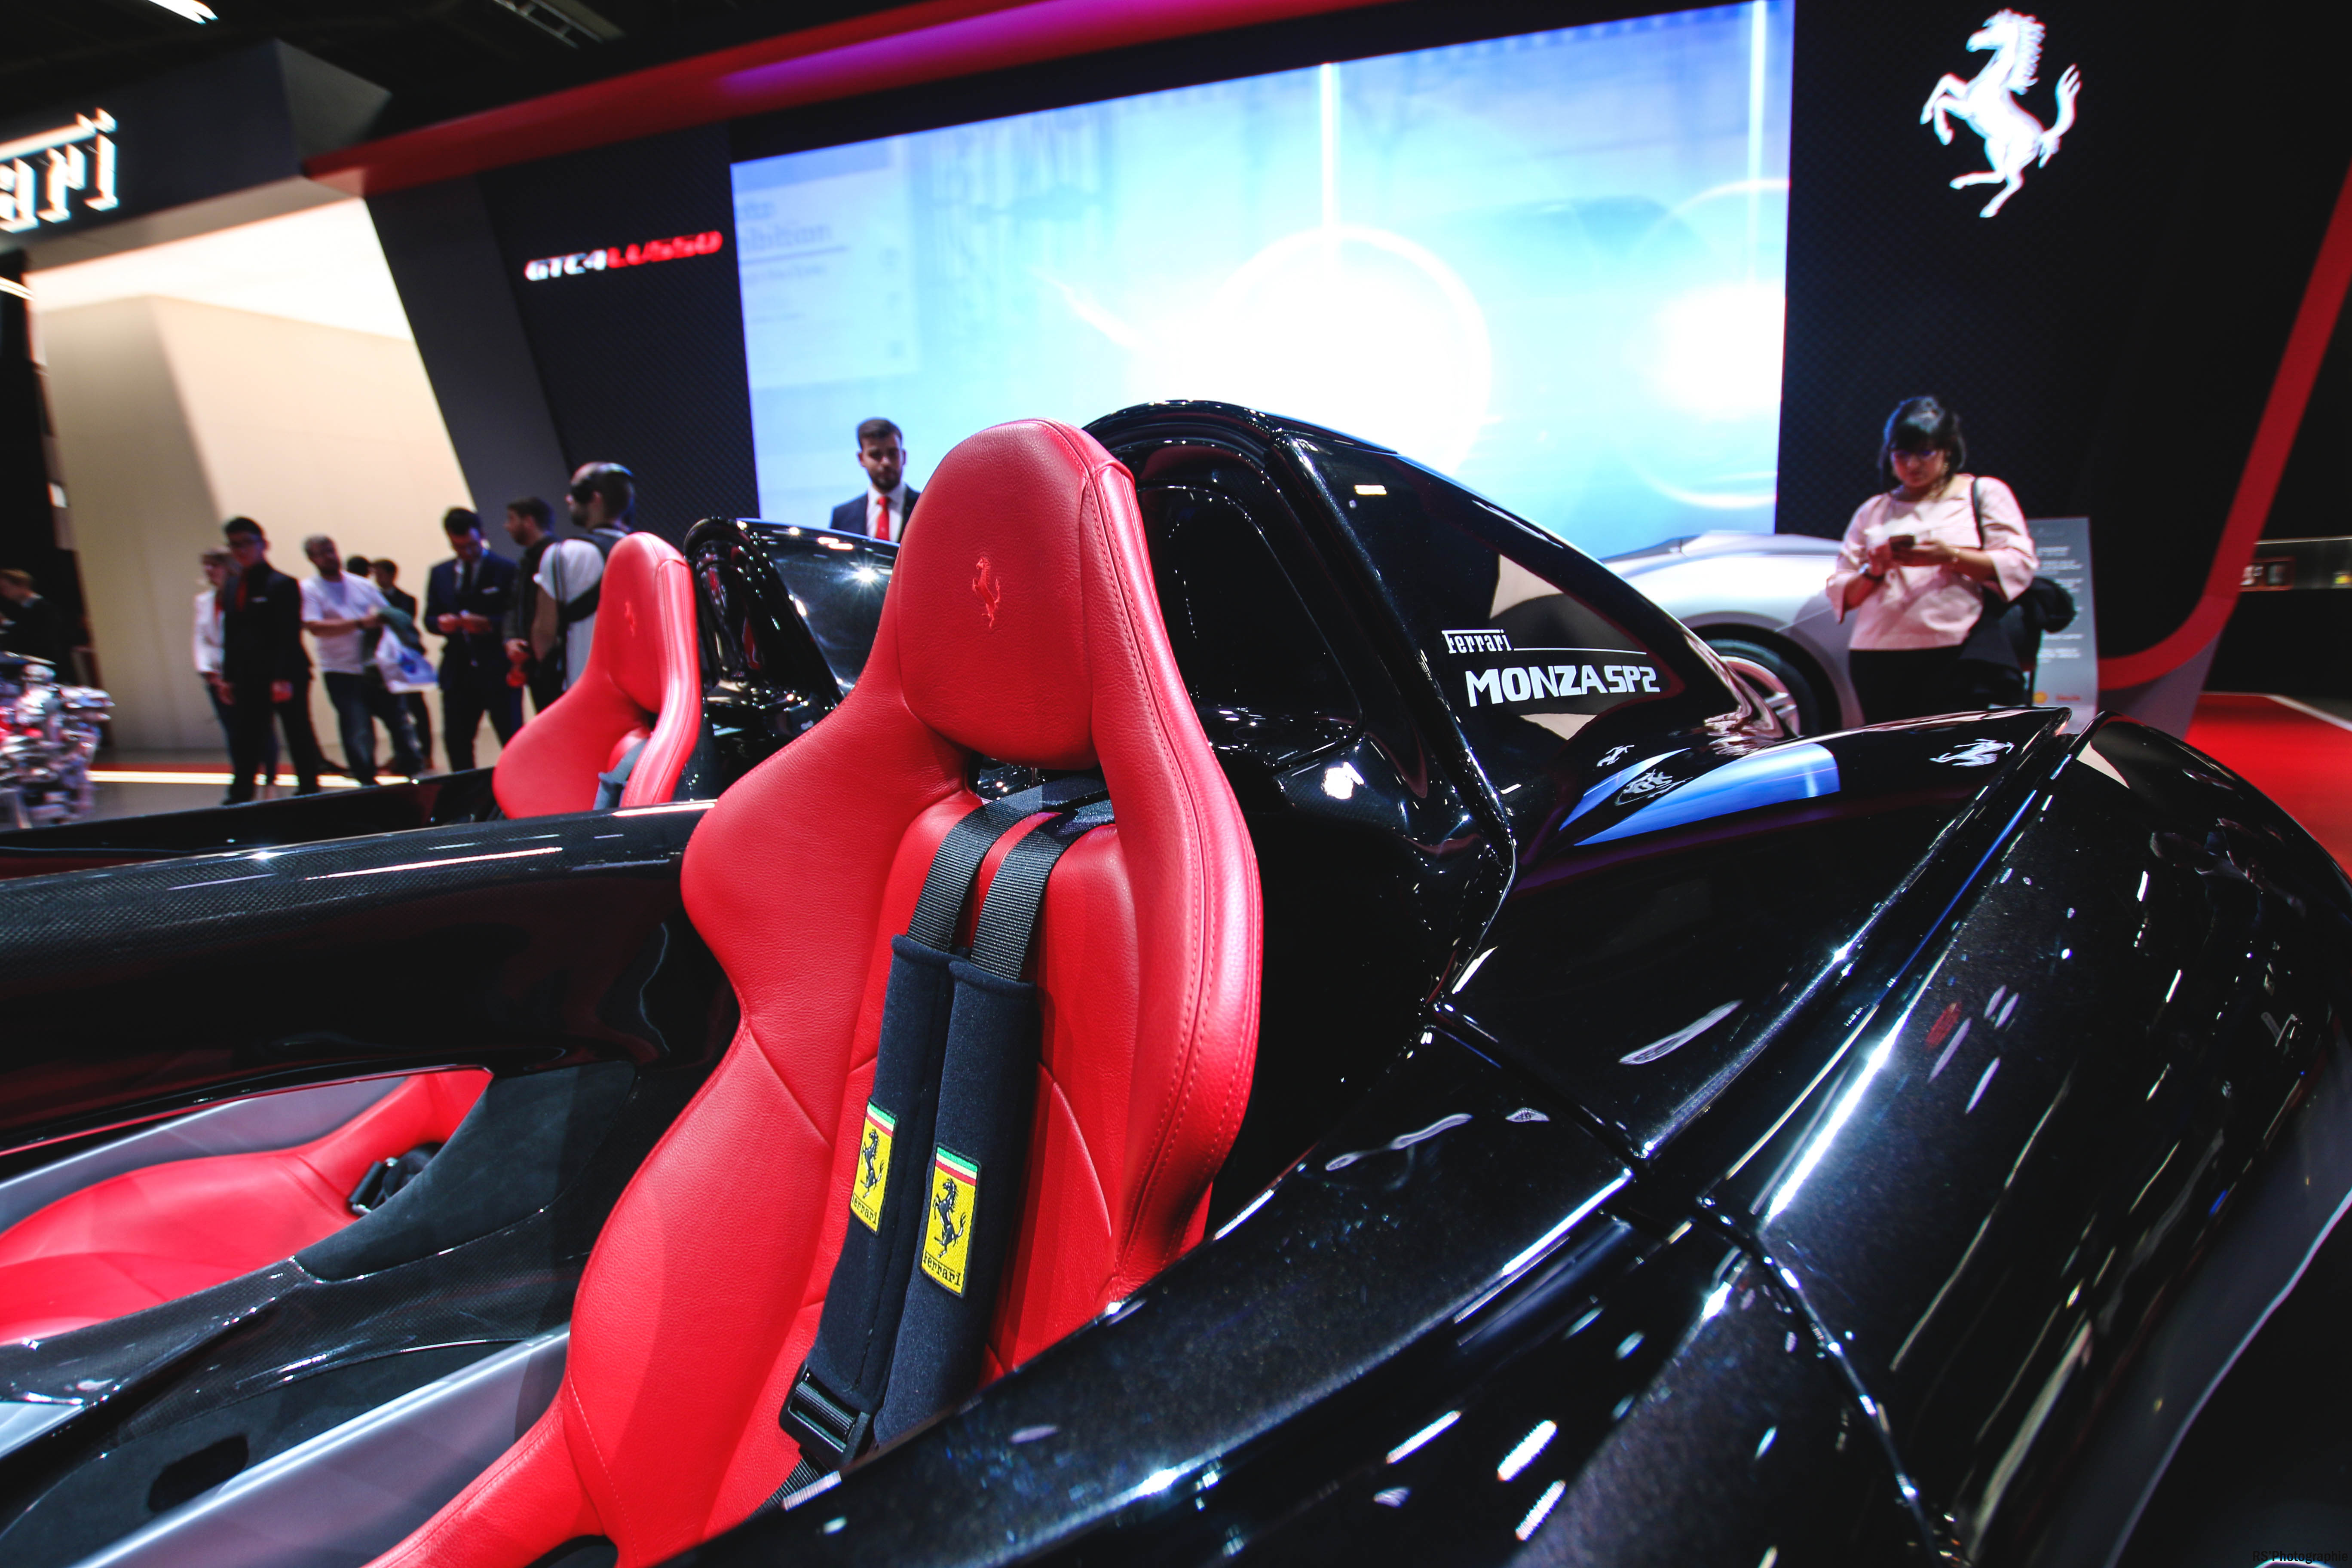 Ferrari Monza SP2 - seats - Paris Motor Show - 2018 - Mondial Auto - photo by Arnaud Demasier RS Photographie